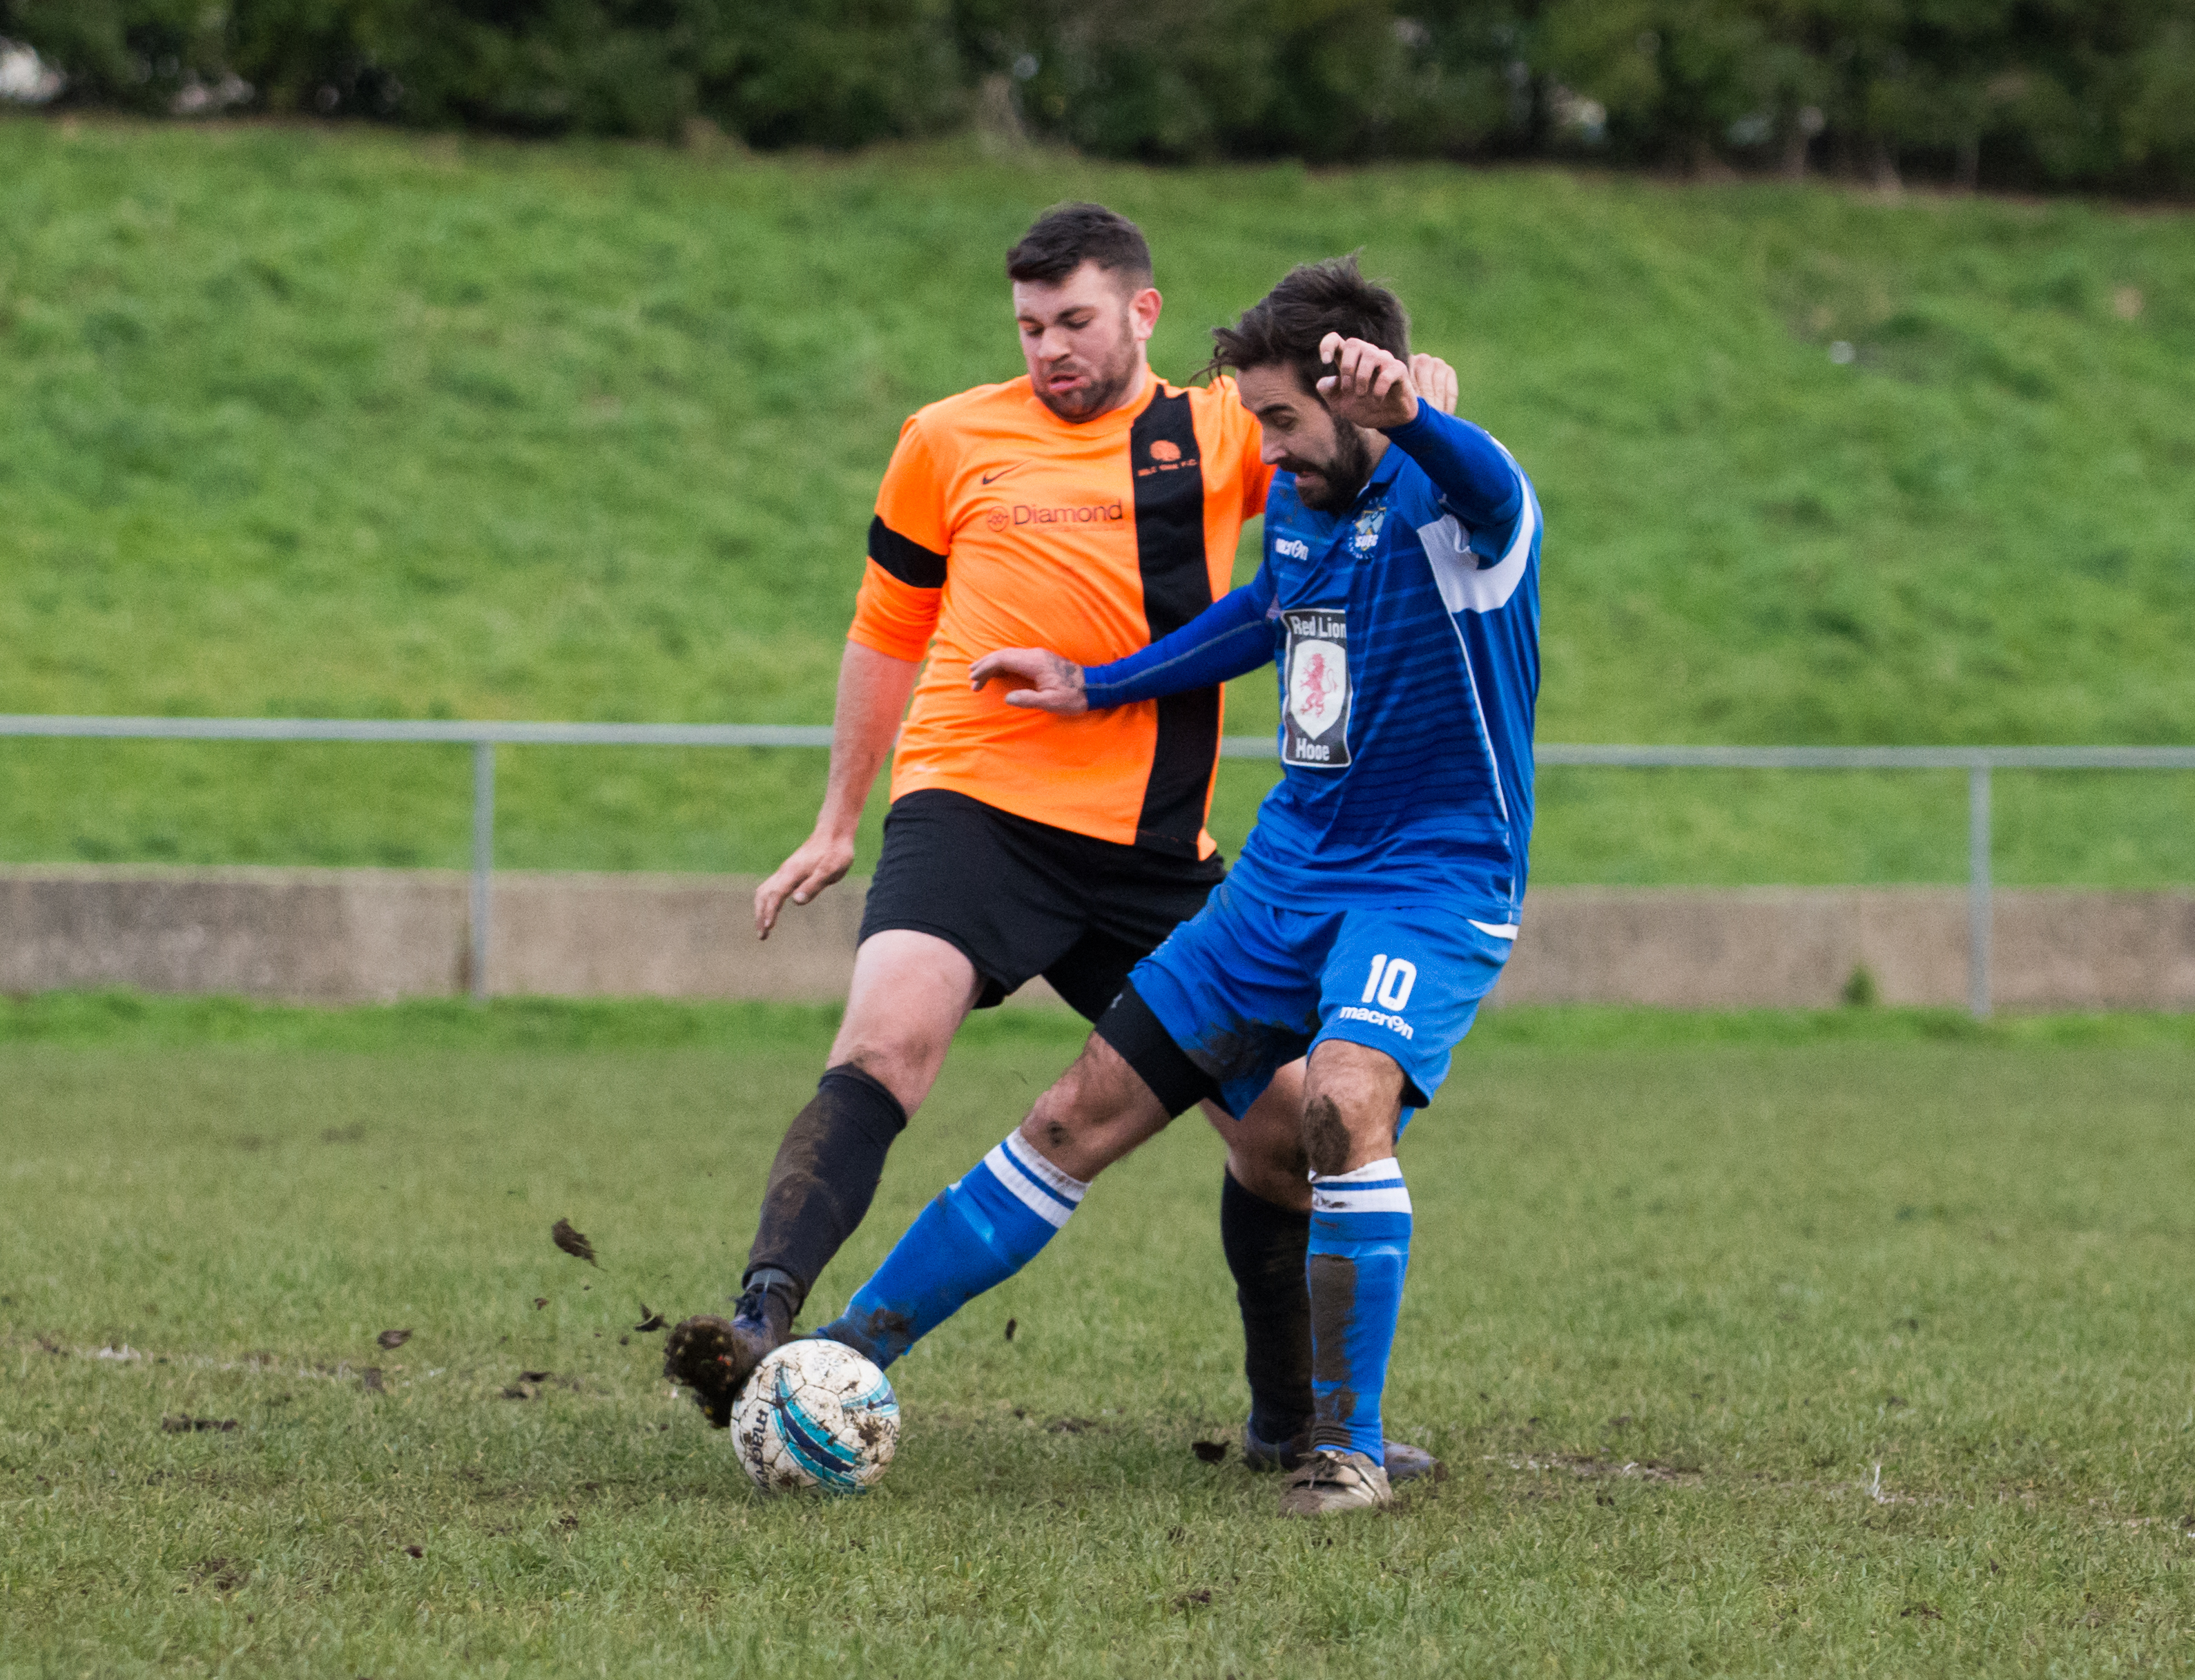 Mile Oak Res vs Sidley United 09.12.17 25